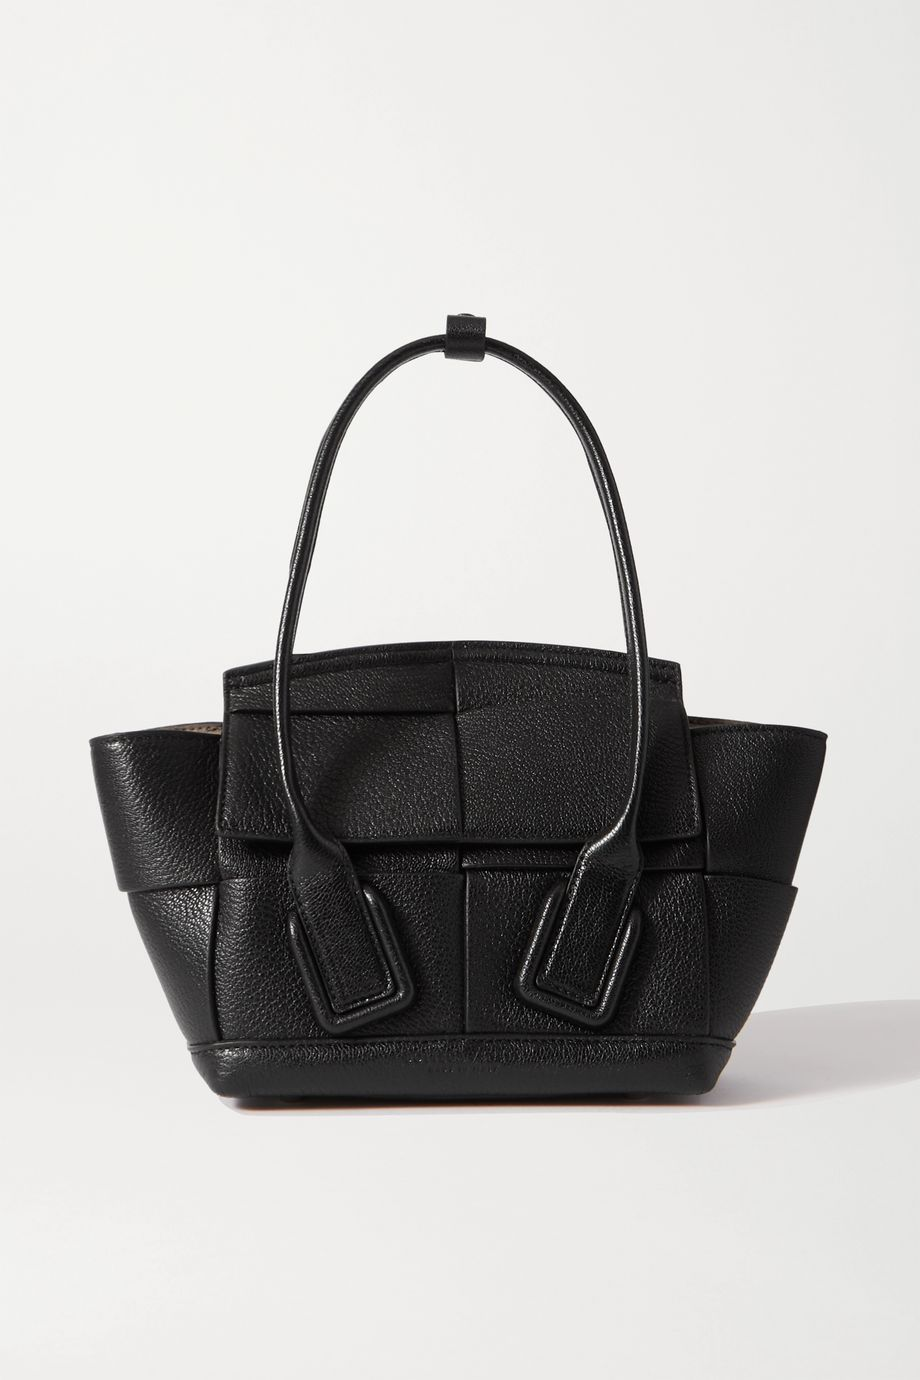 Bottega Veneta Arco mini textured-leather tote